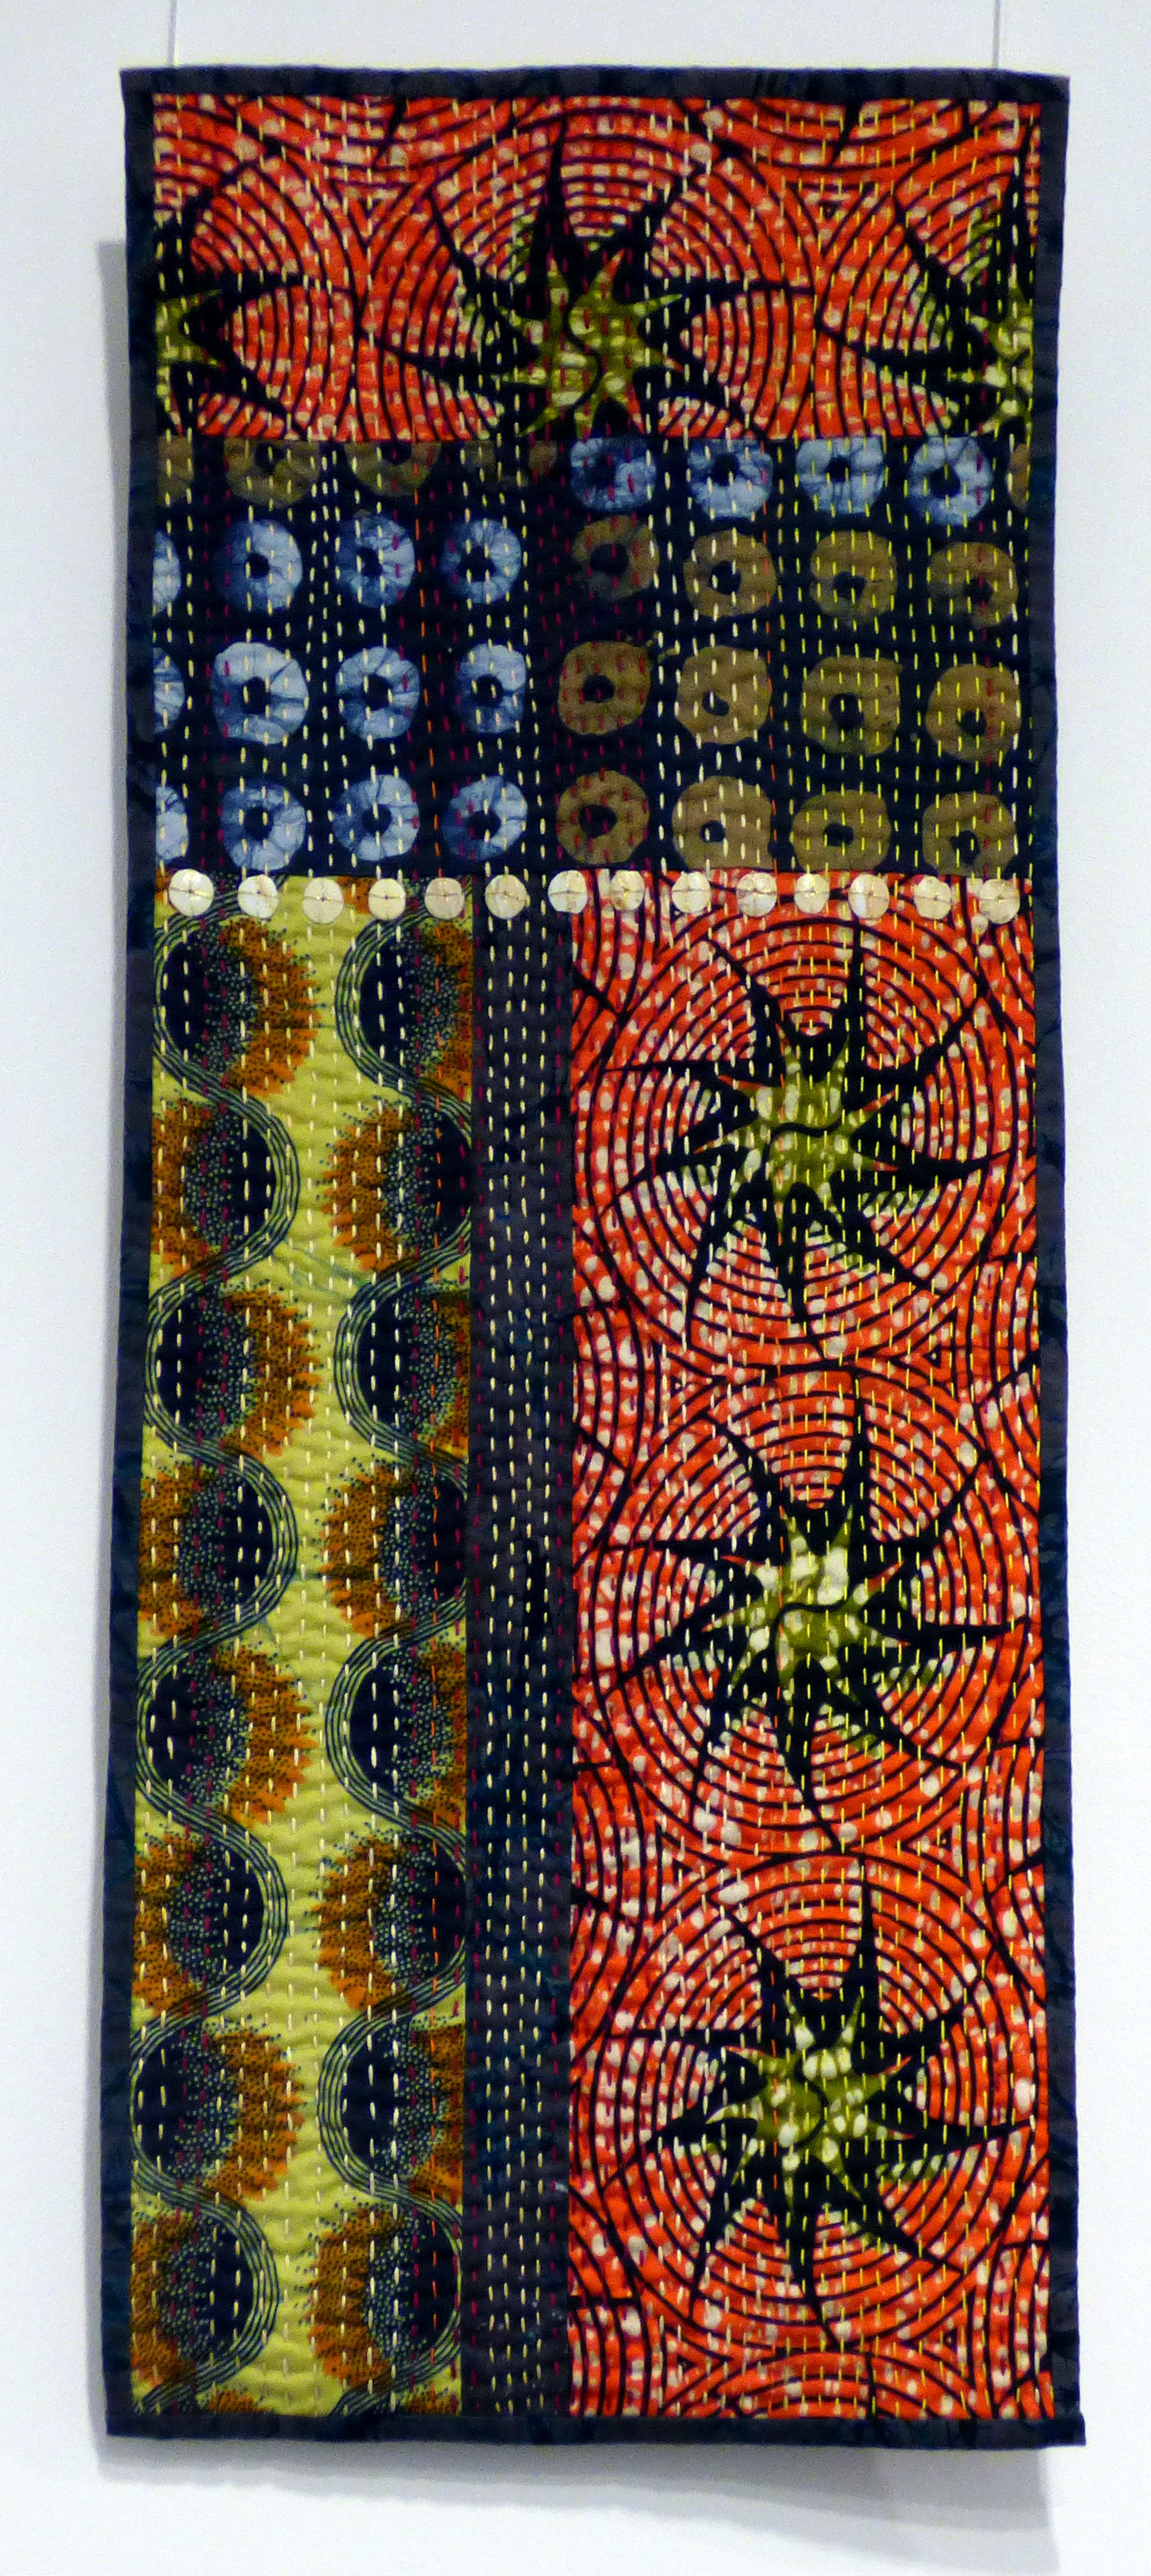 RHYTHMS by Sylvia Wood, quilted hanging, Ten Plus @ The Atkinson 2018